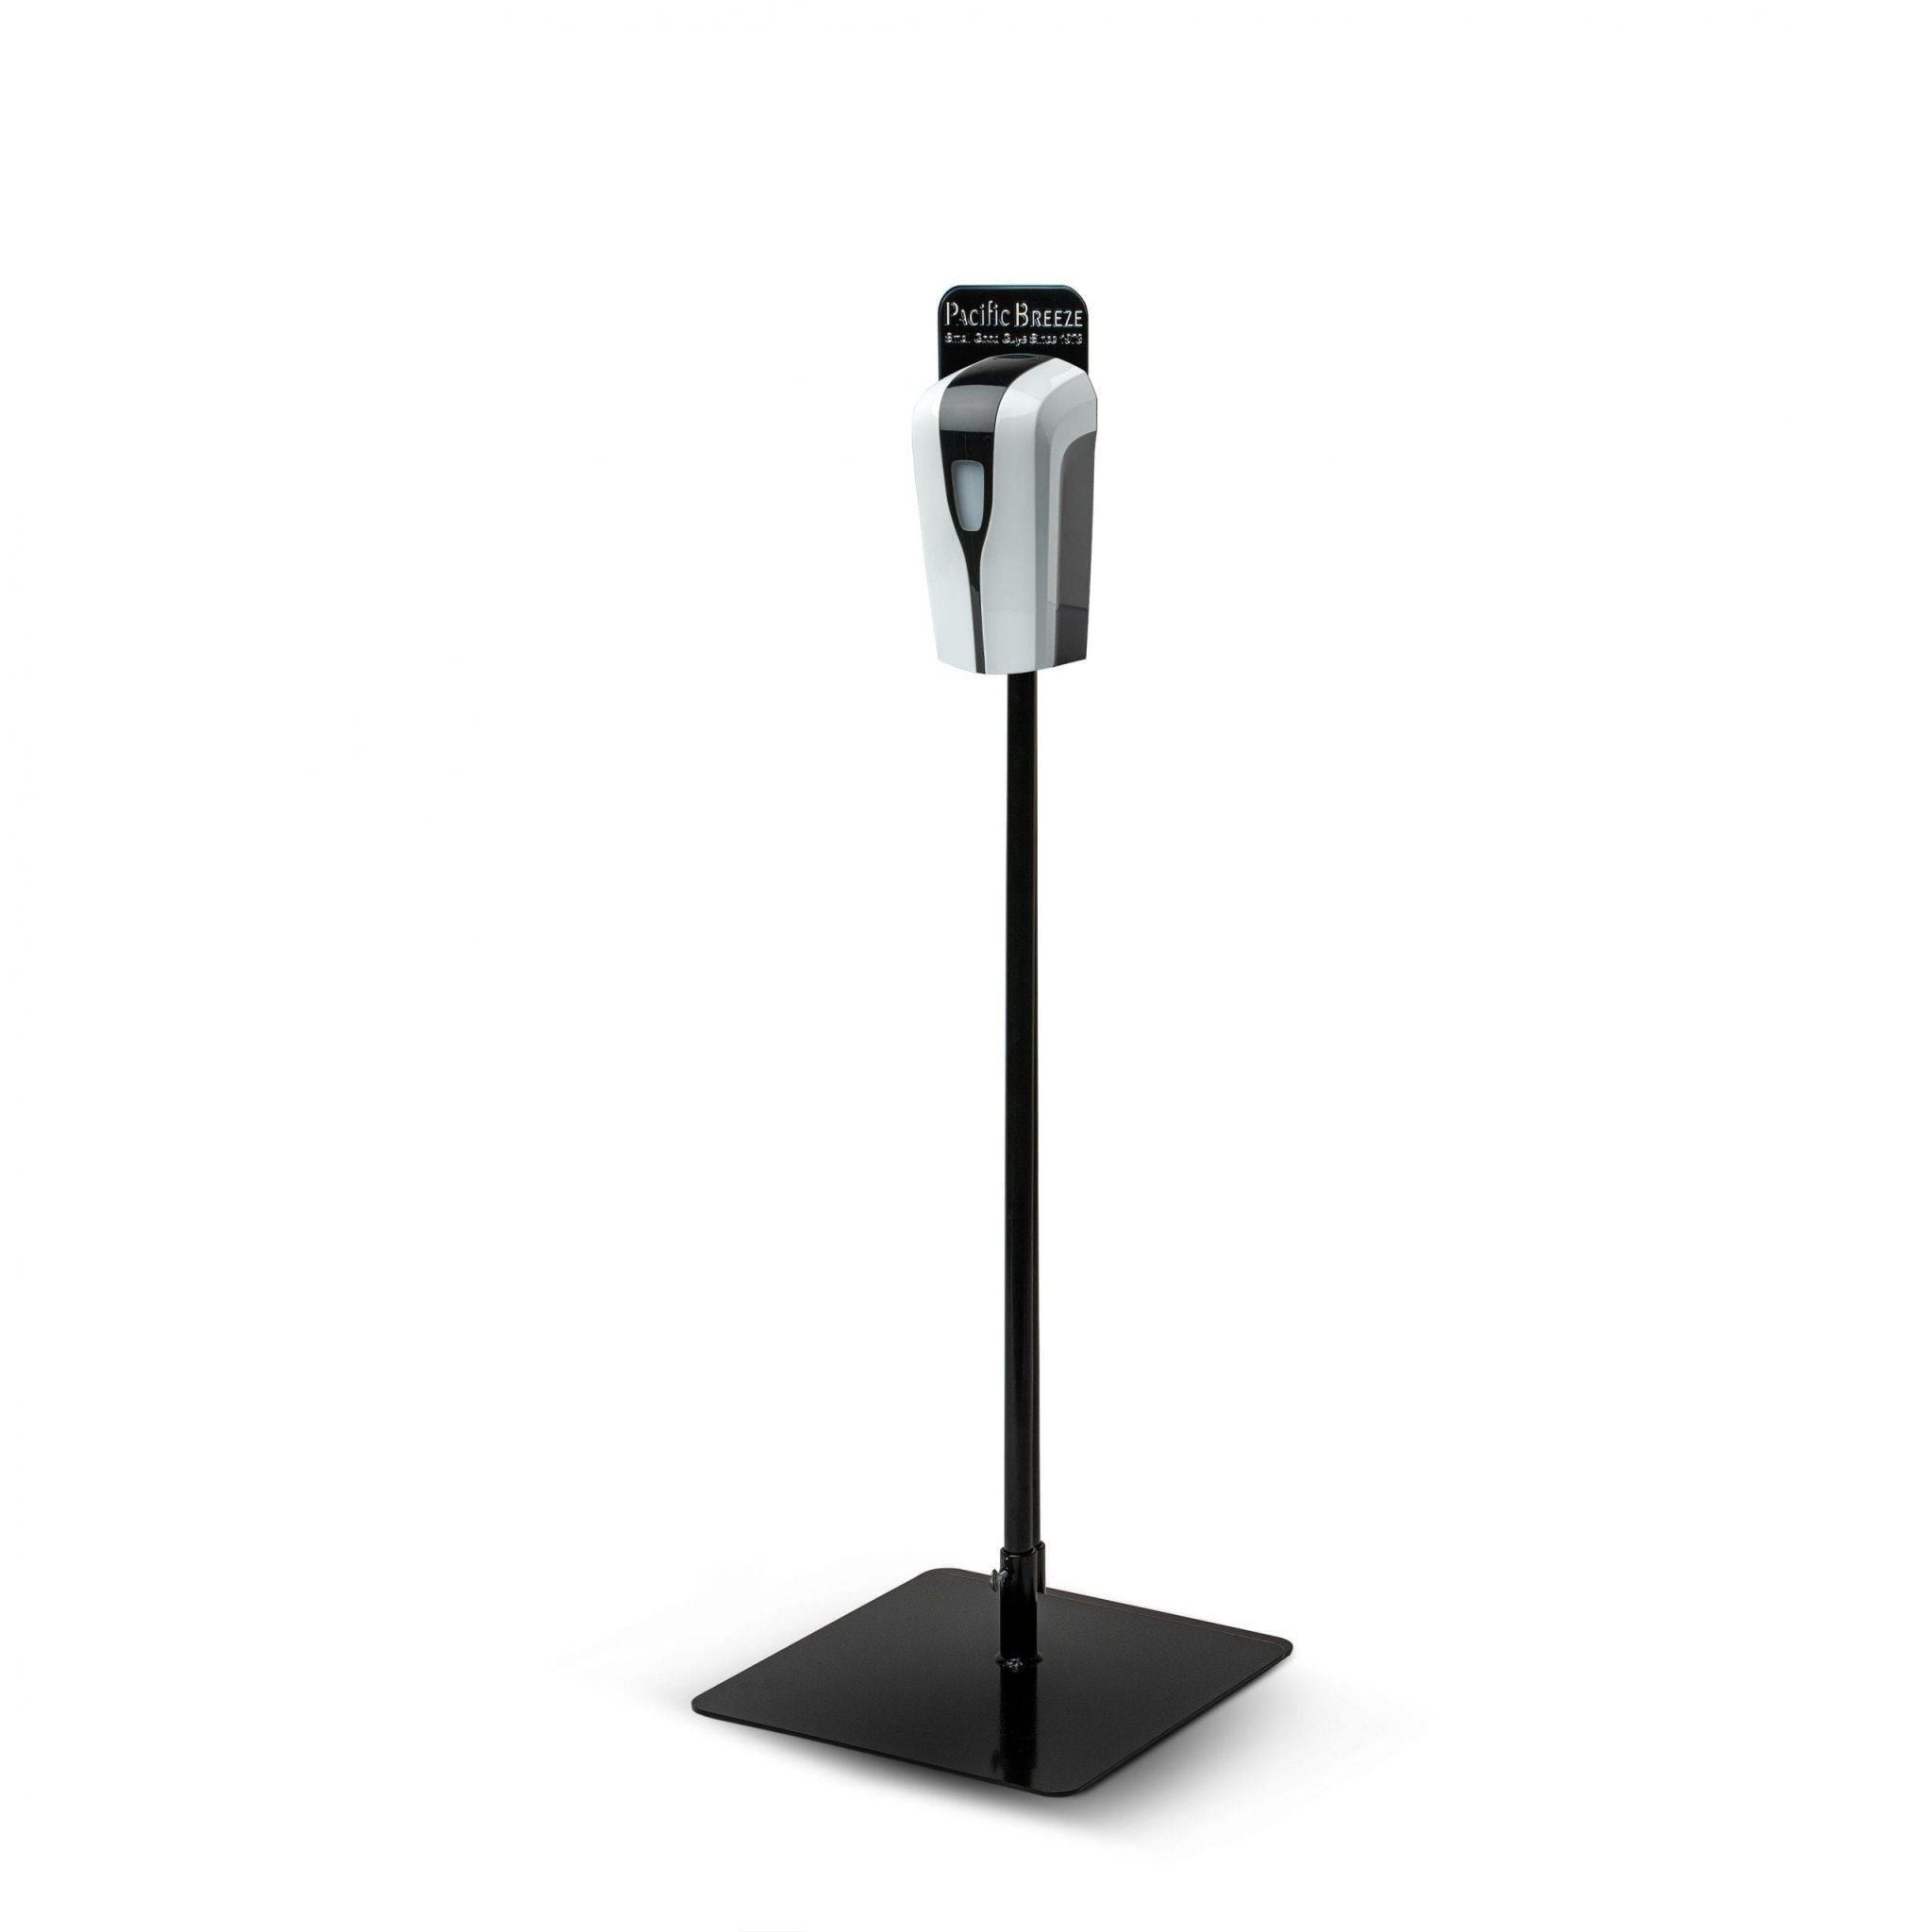 Pacific Breeze Heavy Duty Sanitizing Dispenser Stand